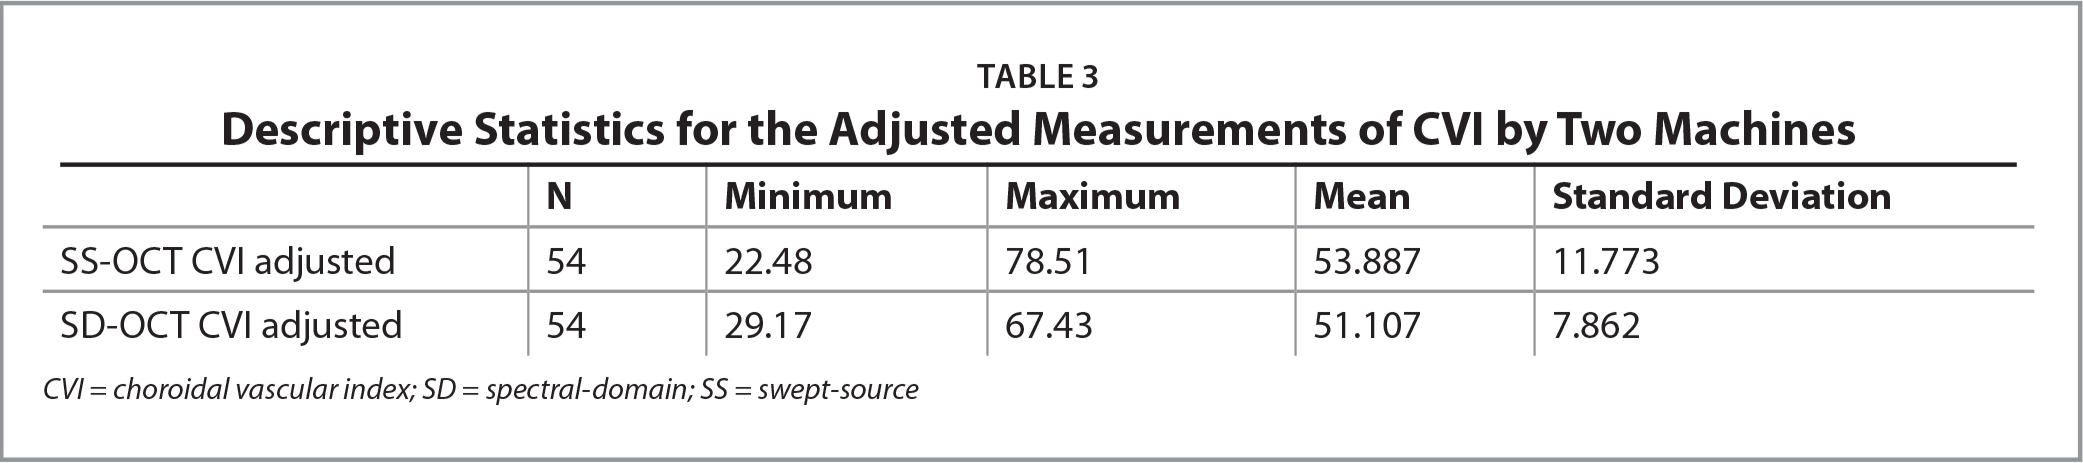 Descriptive Statistics for the Adjusted Measurements of CVI by Two Machines